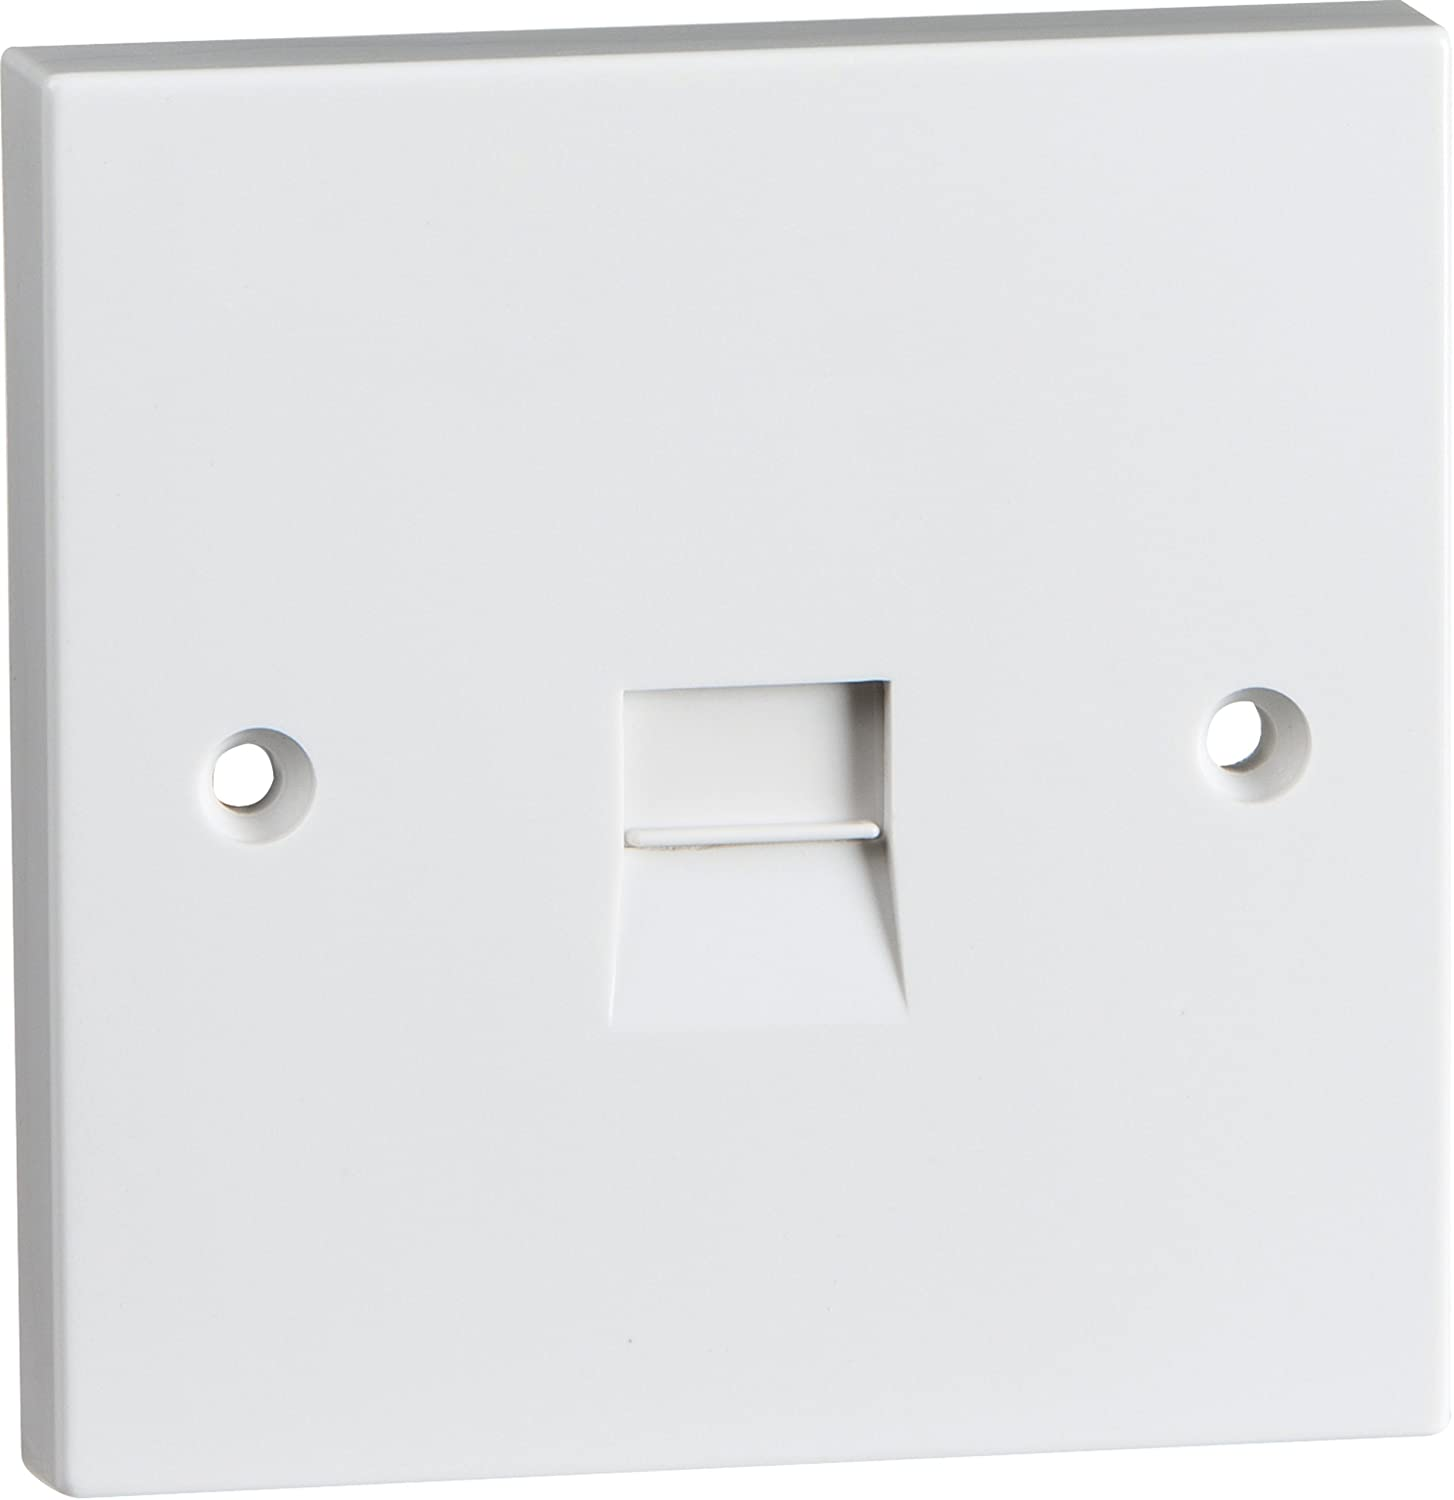 86x86mm inside wall mounting box flush mounted for faceplate 2pcs//pack